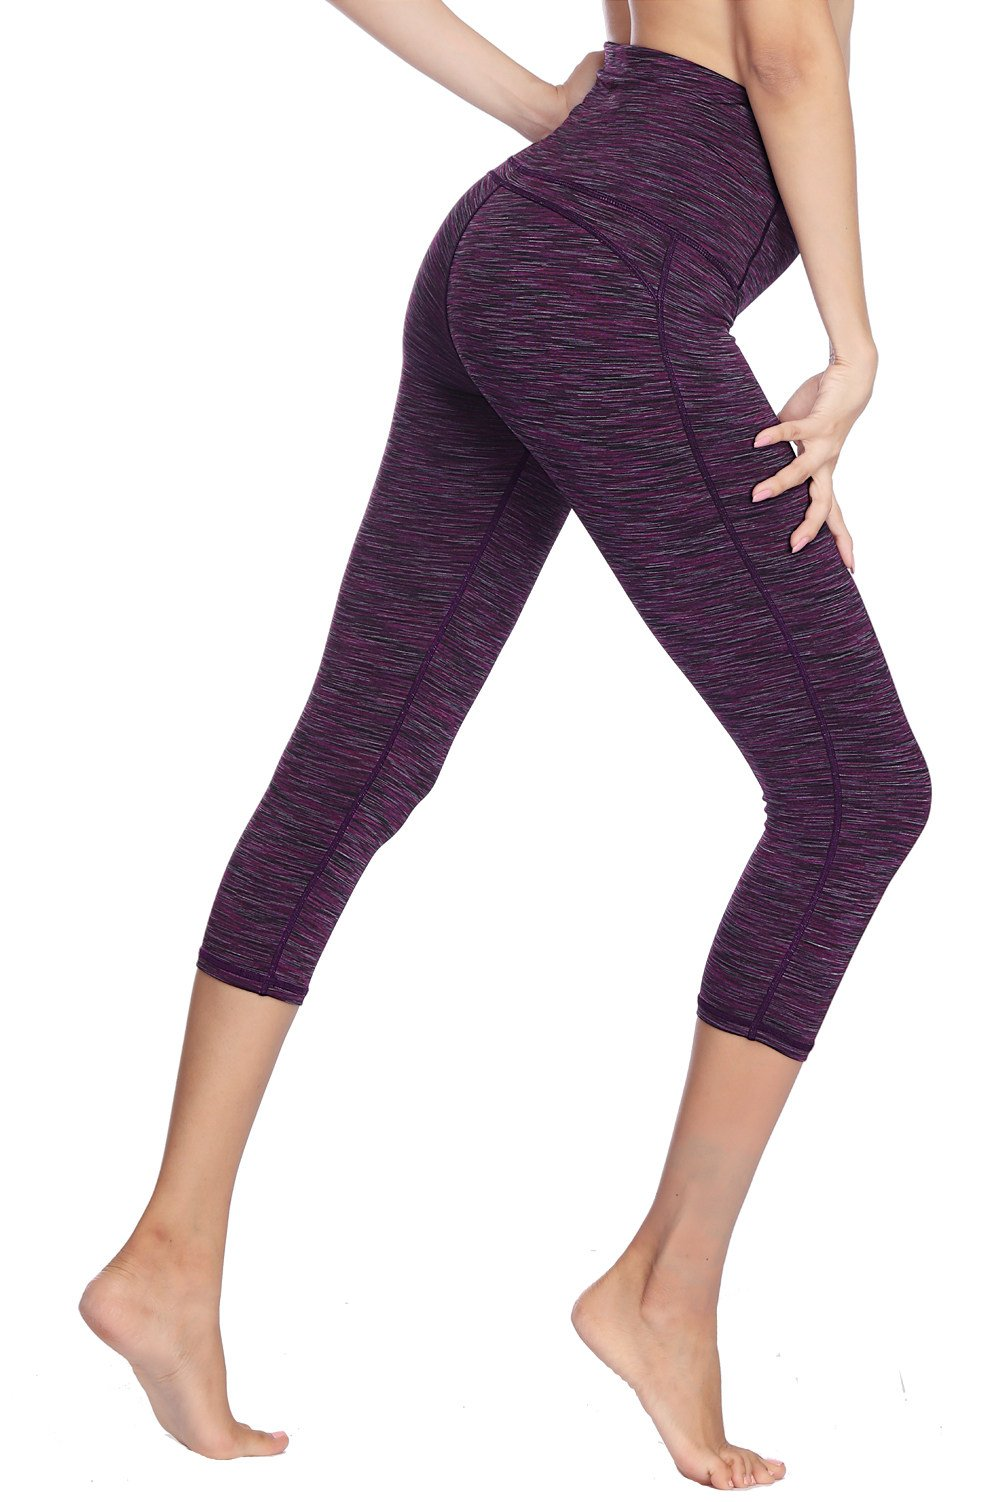 Dragon Fit Compression Yoga Pants Power Stretch Workout Leggings with High Waist Tummy Control (Large, Capri-Purple) by Dragon Fit (Image #3)